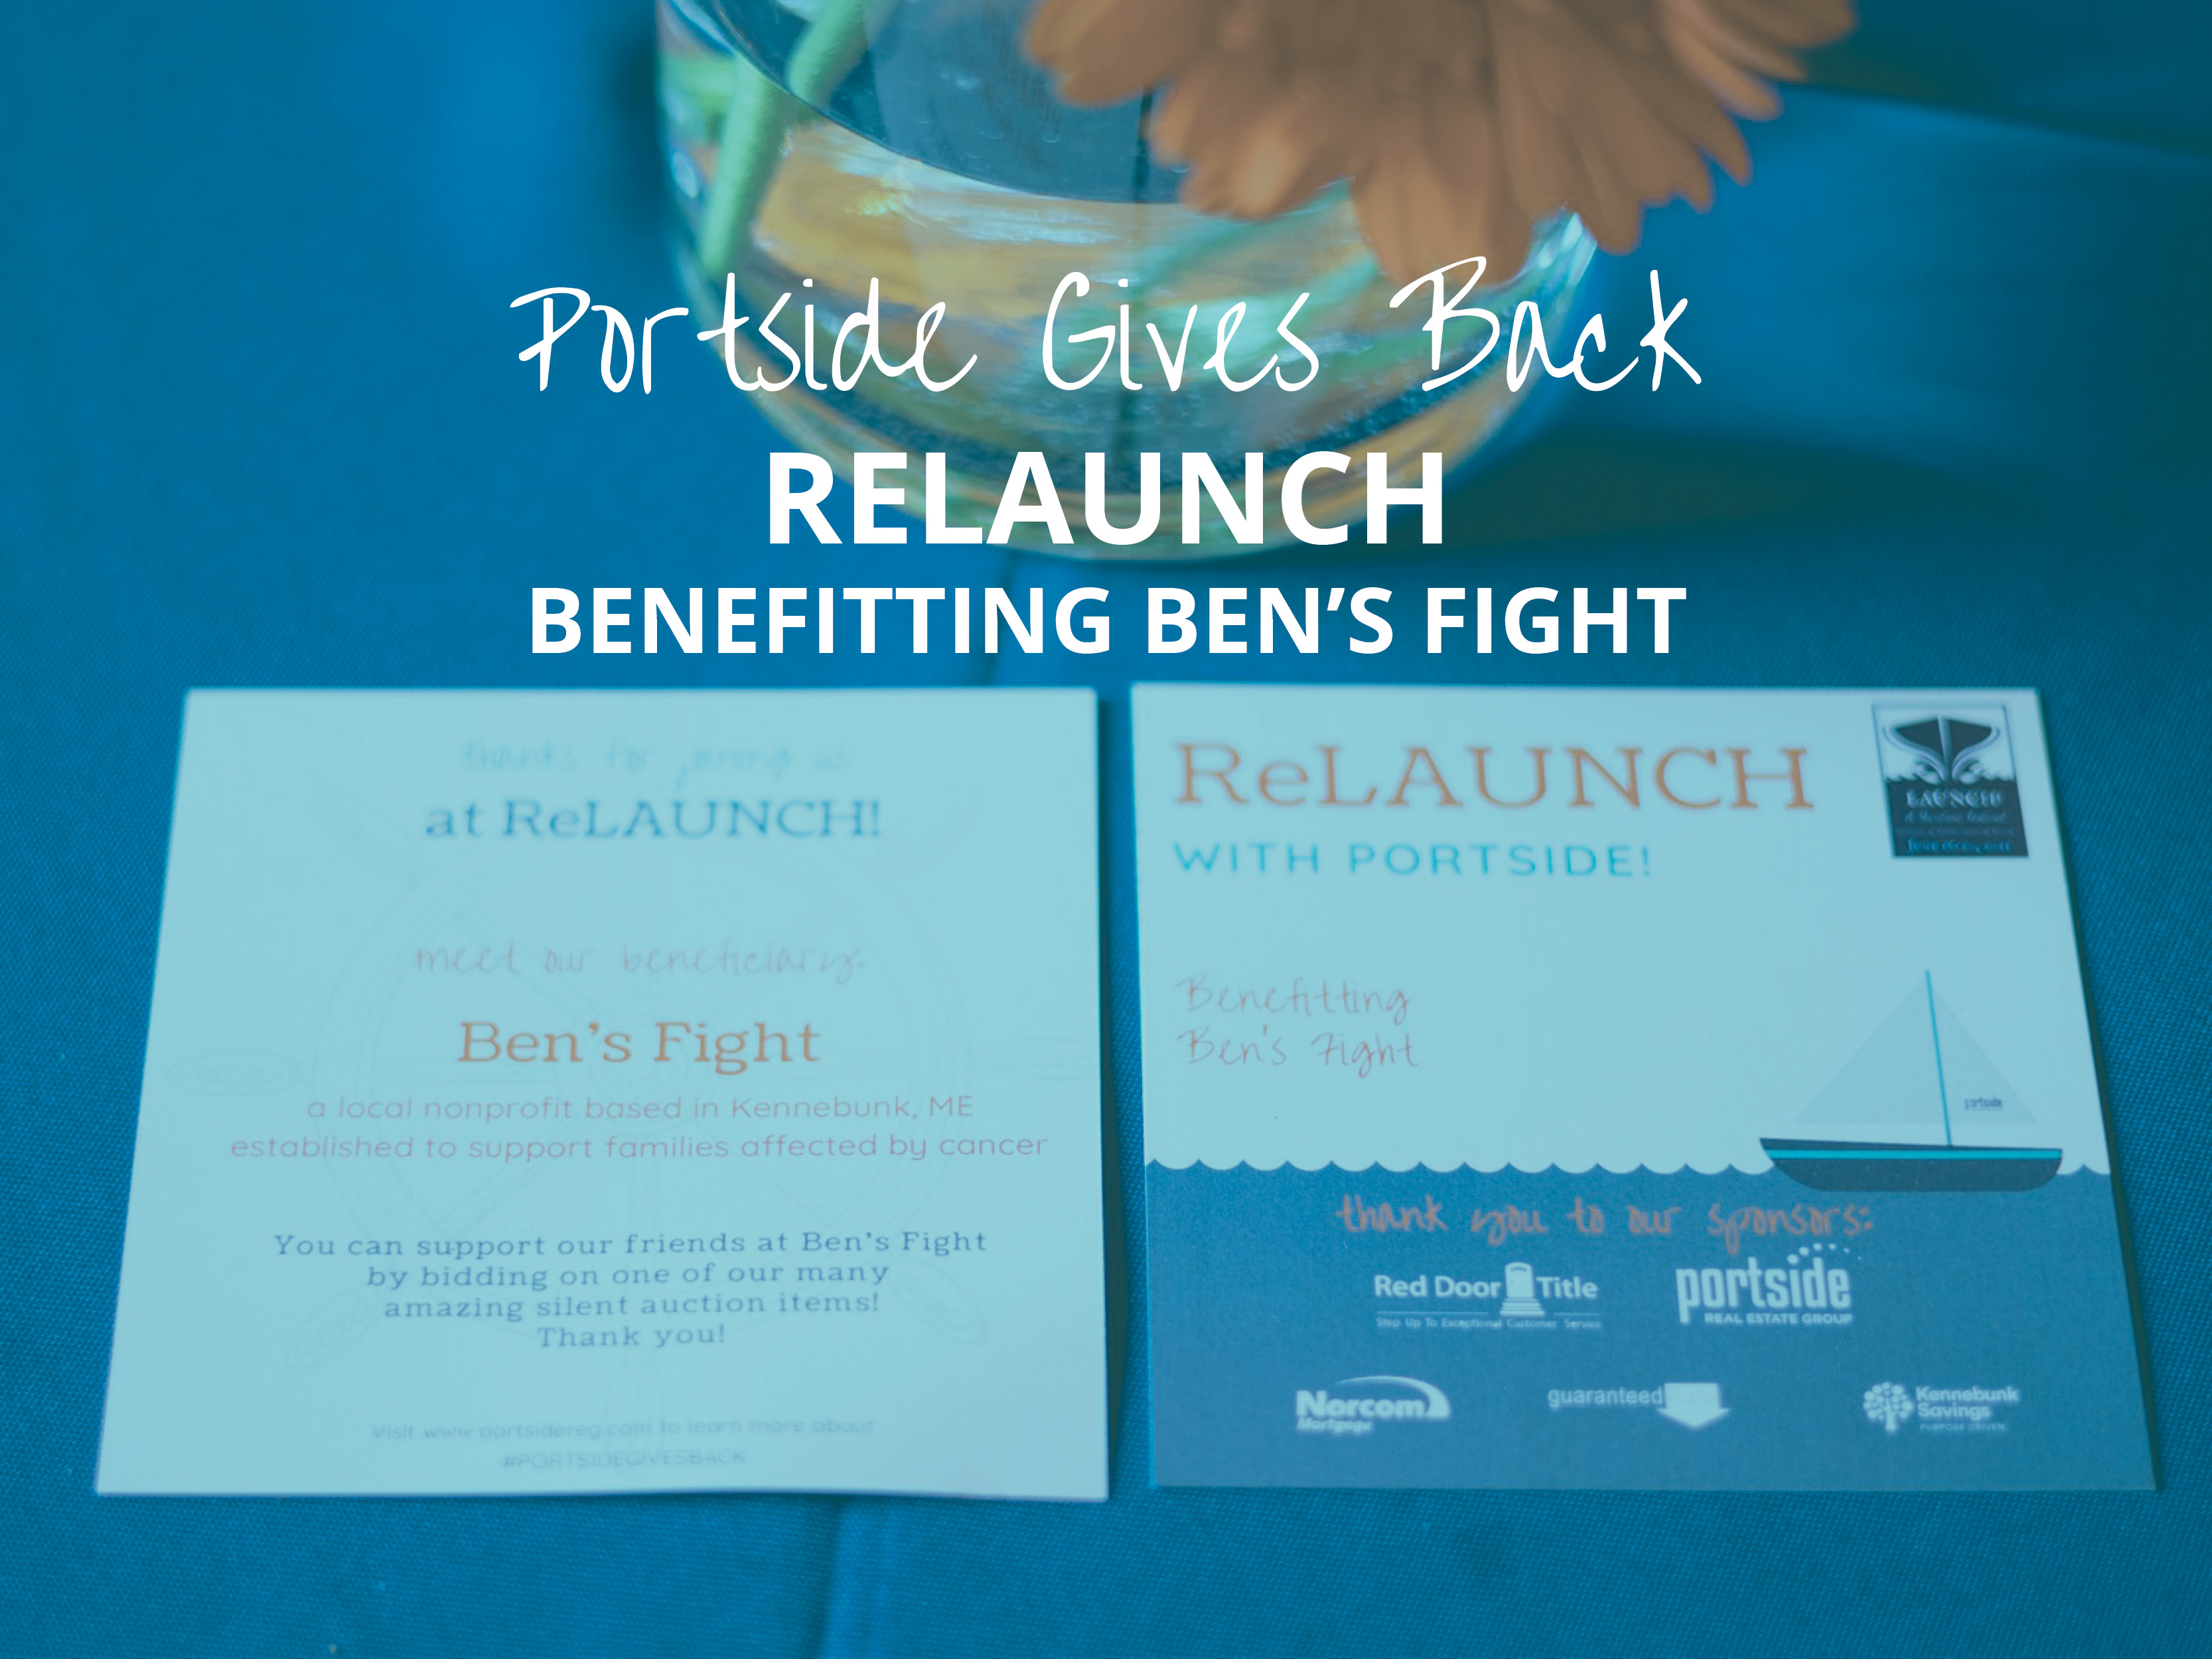 Portside Gives Back ReLAUNCH, benefitting Ben's Fight